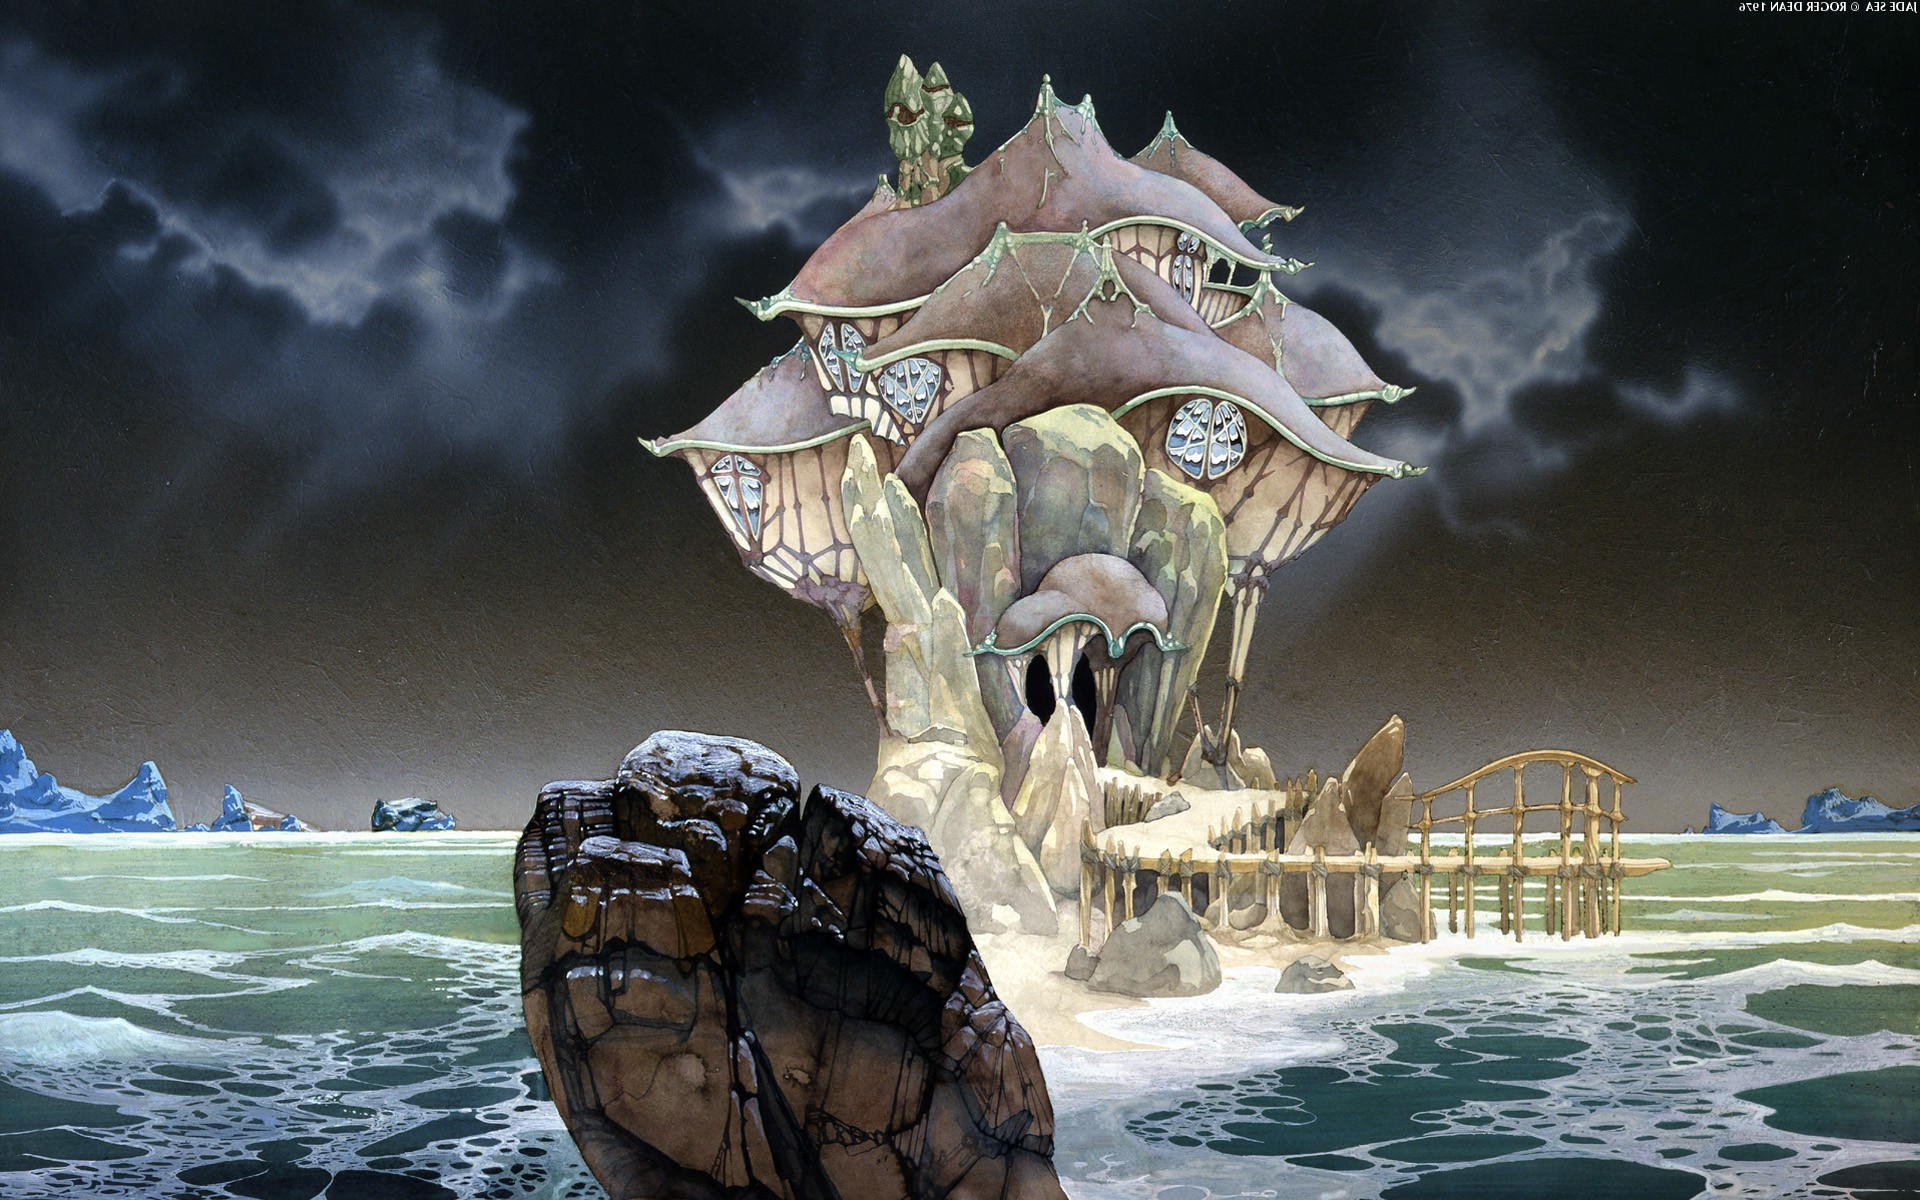 1920x1200 Roger Dean, Fantasy Art, Rock, Sea Wallpapers HD / Desktop and Mobile  Backgrounds